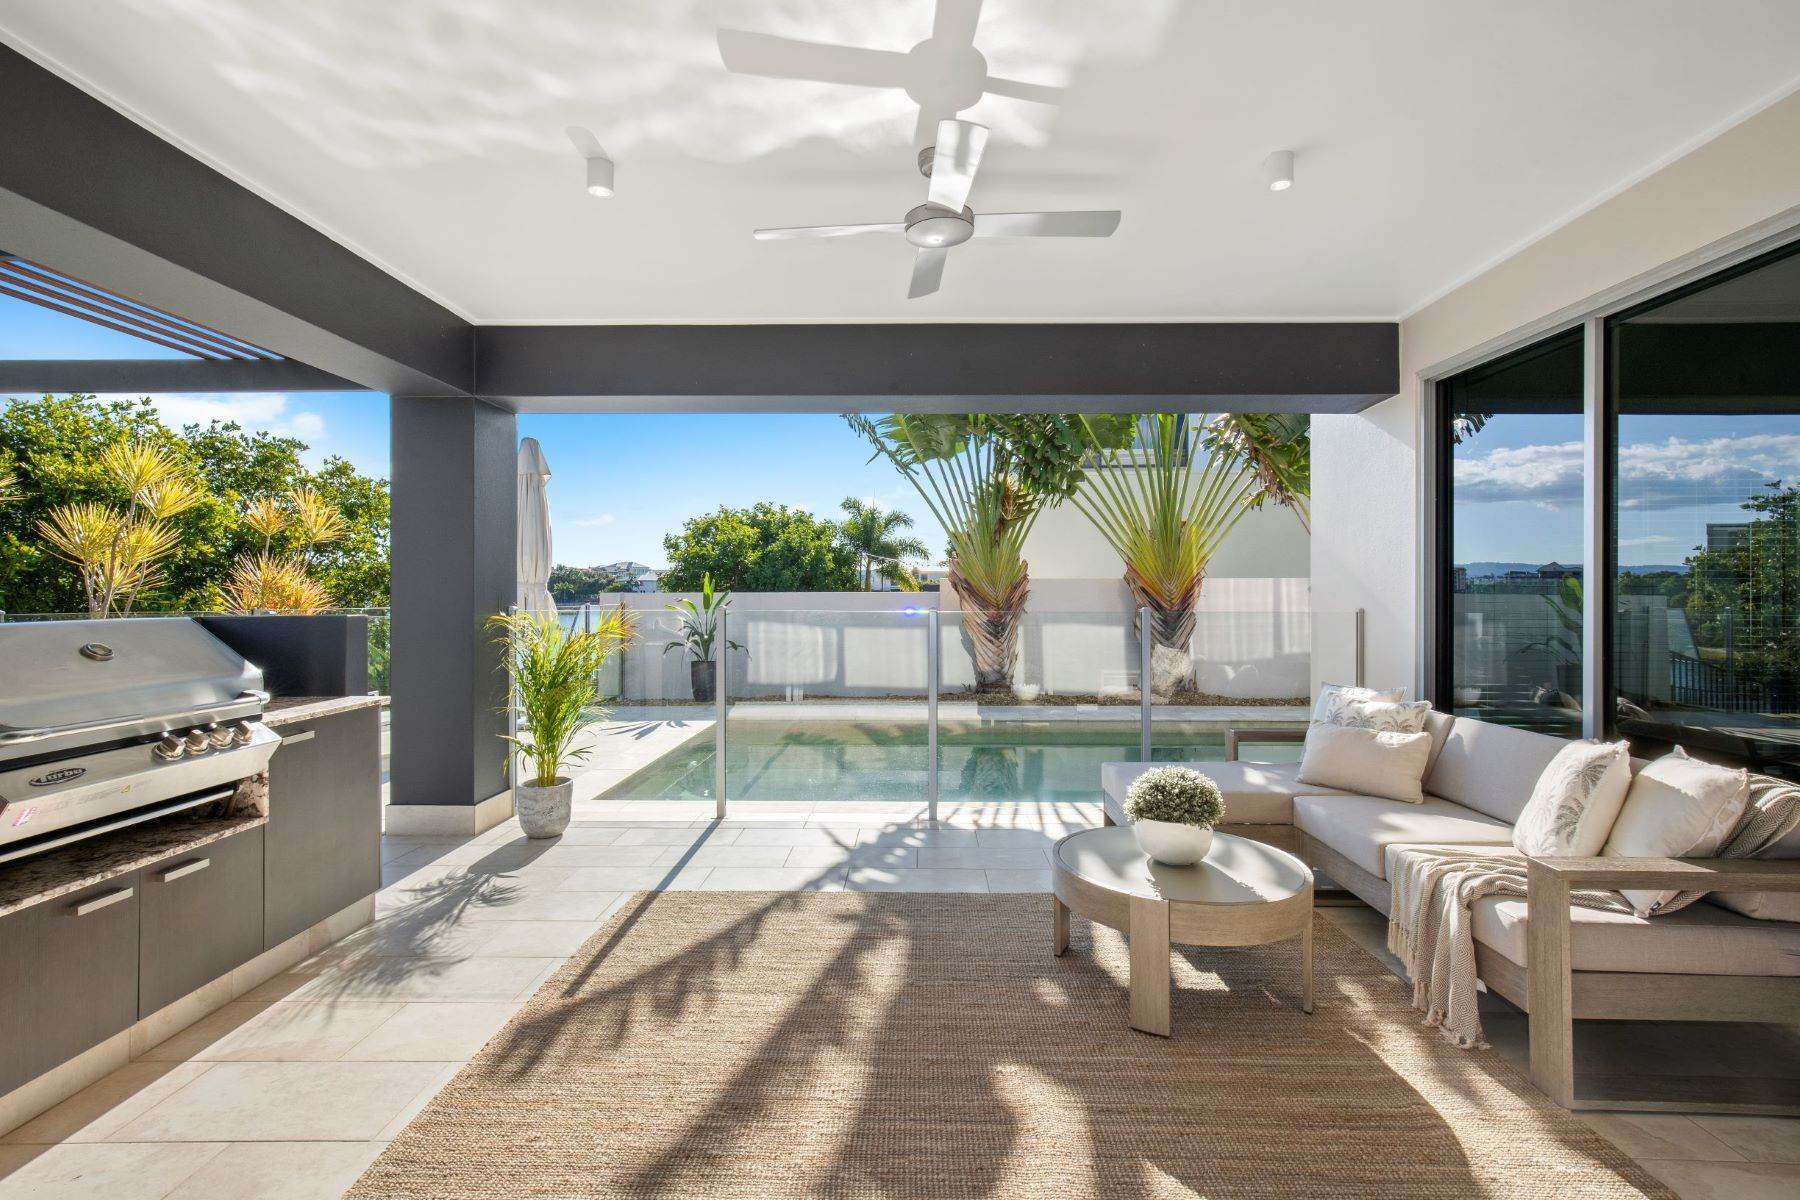 13. Single Family Homes for Sale at Luxury Lakeside Family Home on Prestigious Emerald Island 5068 Emerald Island Drive Other Queensland, Queensland 4211 Australia